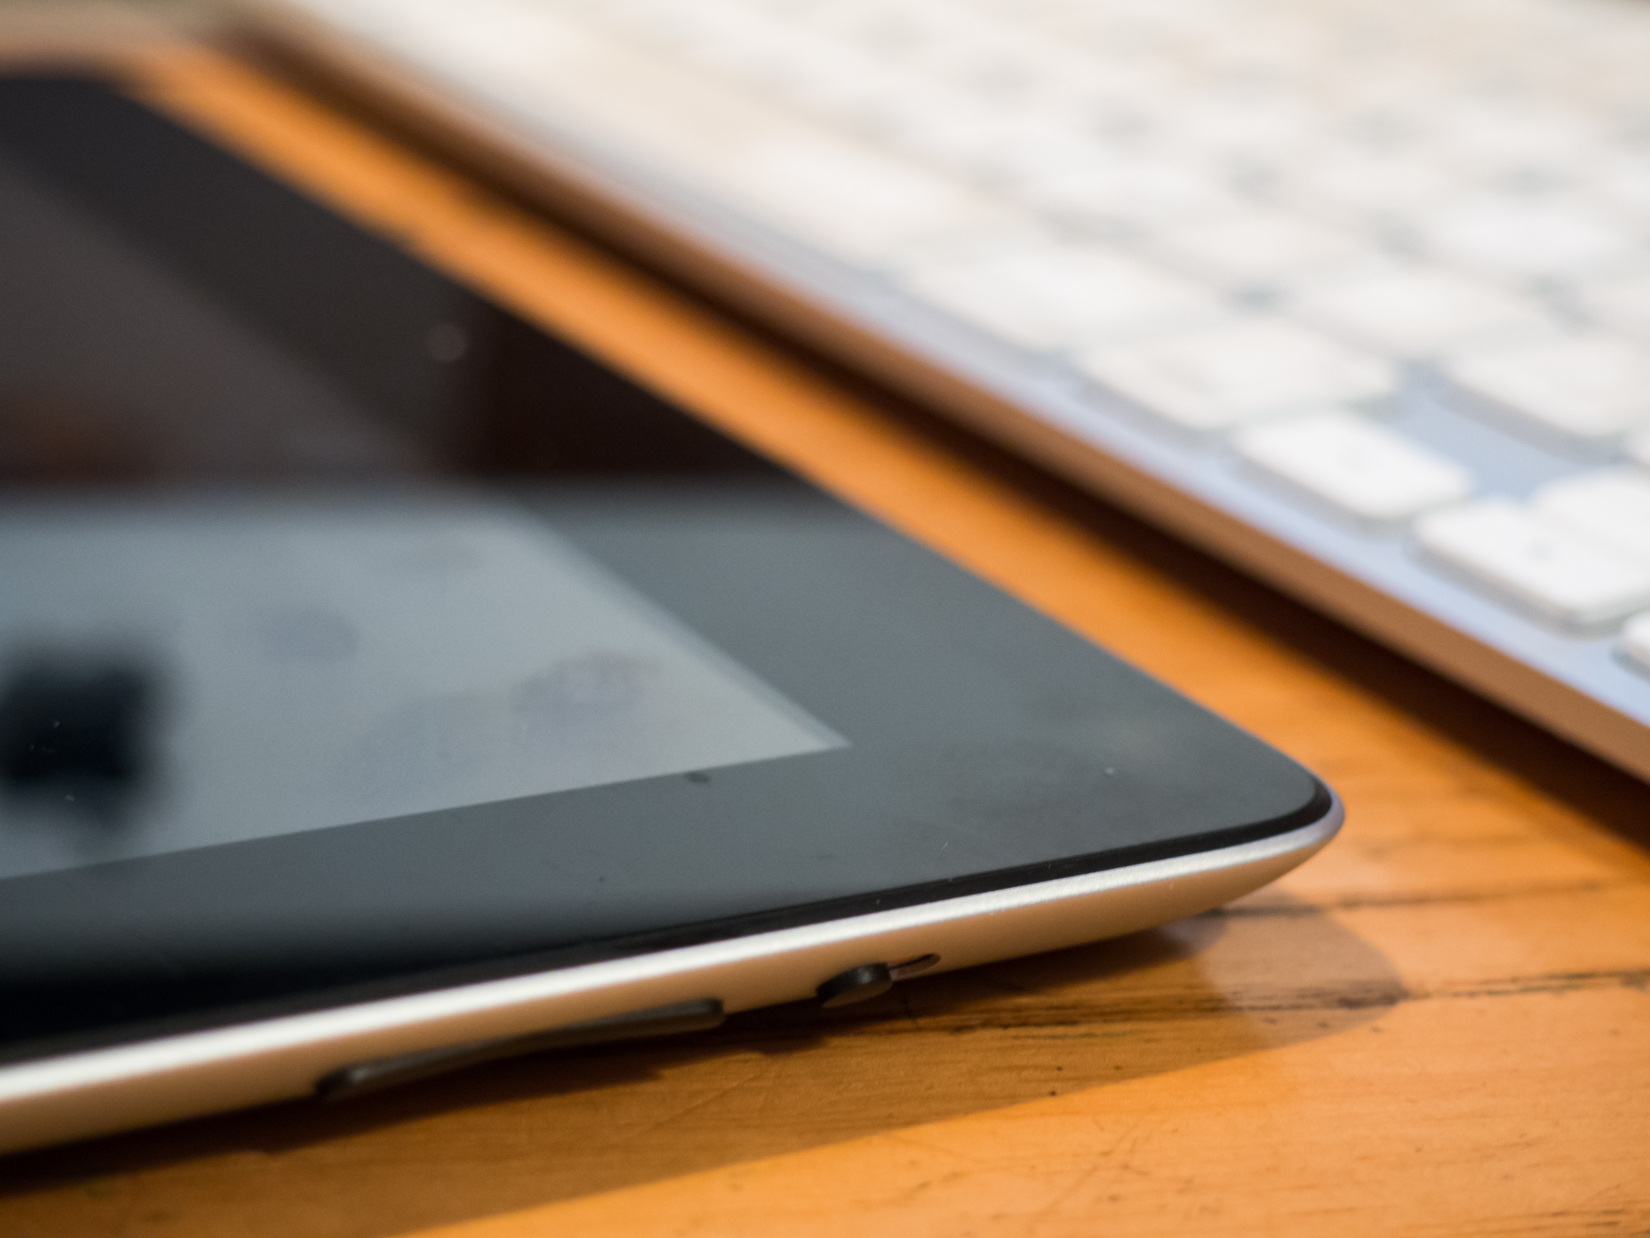 Tablet and Keyboard on Wooden Desk